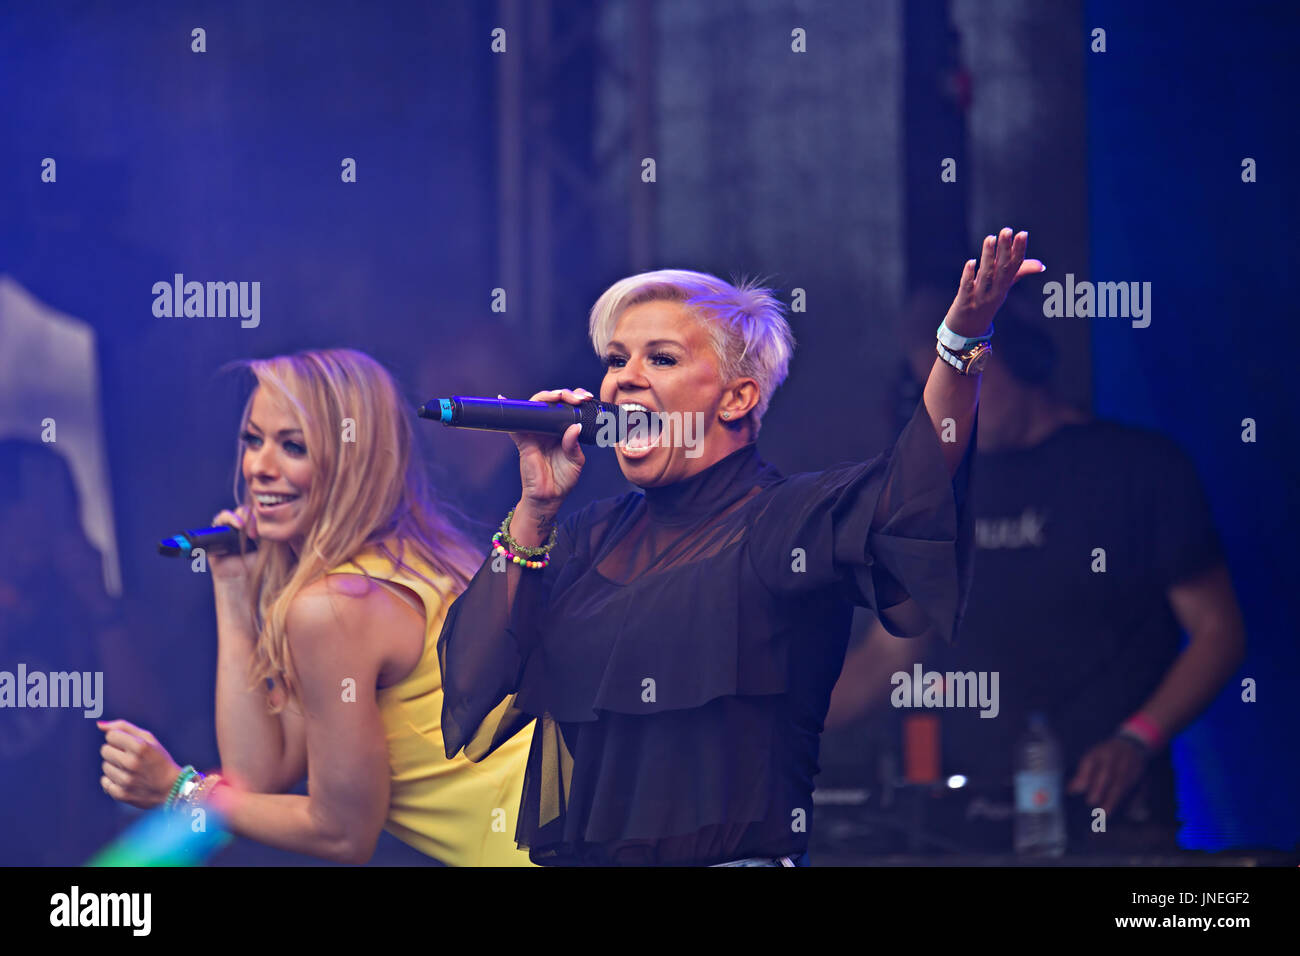 Liverpool, UK. 29th July, 2017. Atomic Kitten performing on stage in Liverpool at the Liverpool Pride weekend. Credit: ken biggs/Alamy Live News - Stock Image